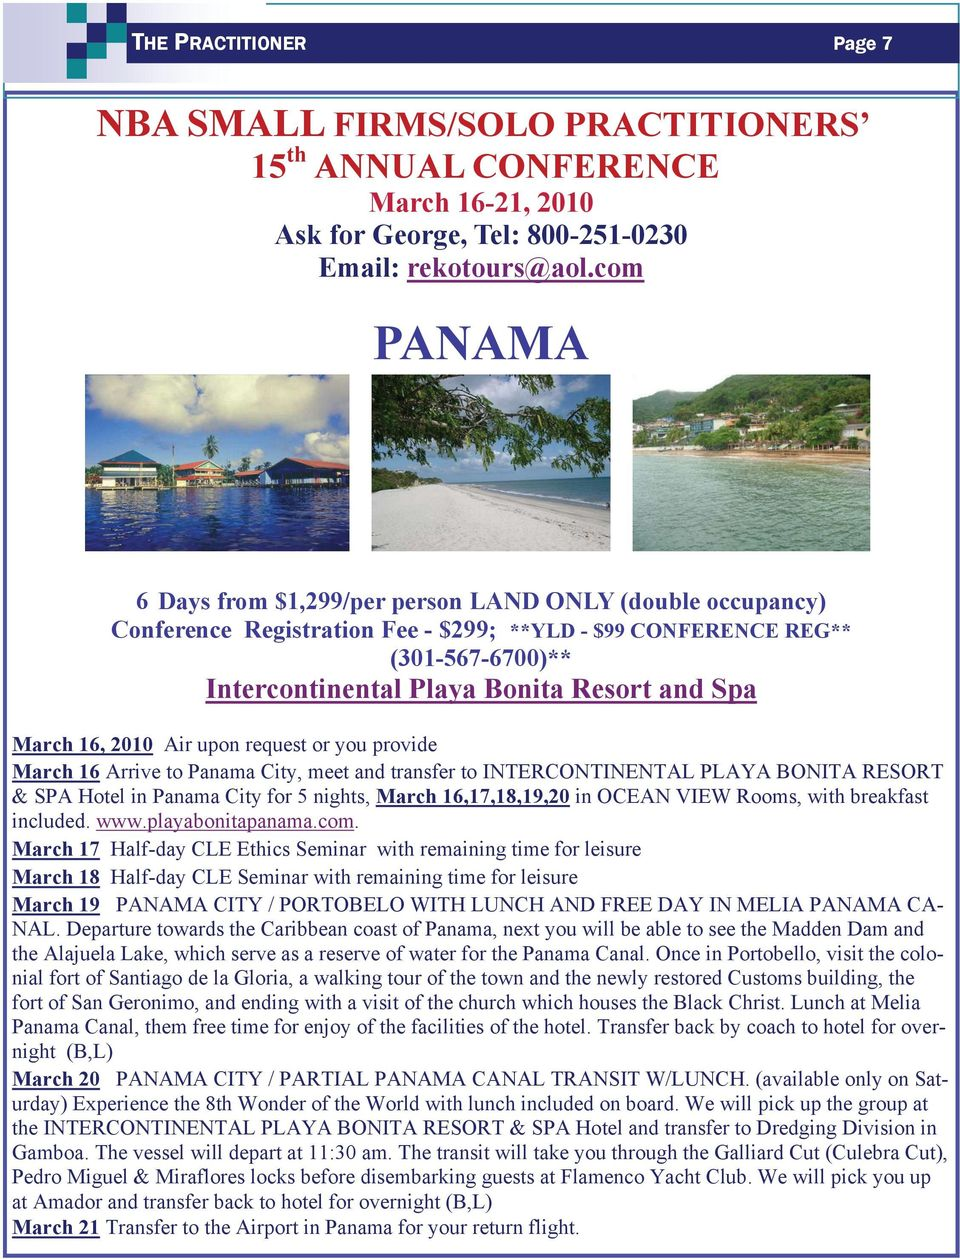 March 16, 2010 Air upon request or you provide March 16 Arrive to Panama City, meet and transfer to INTERCONTINENTAL PLAYA BONITA RESORT & SPA Hotel in Panama City for 5 nights, March 16,17,18,19,20